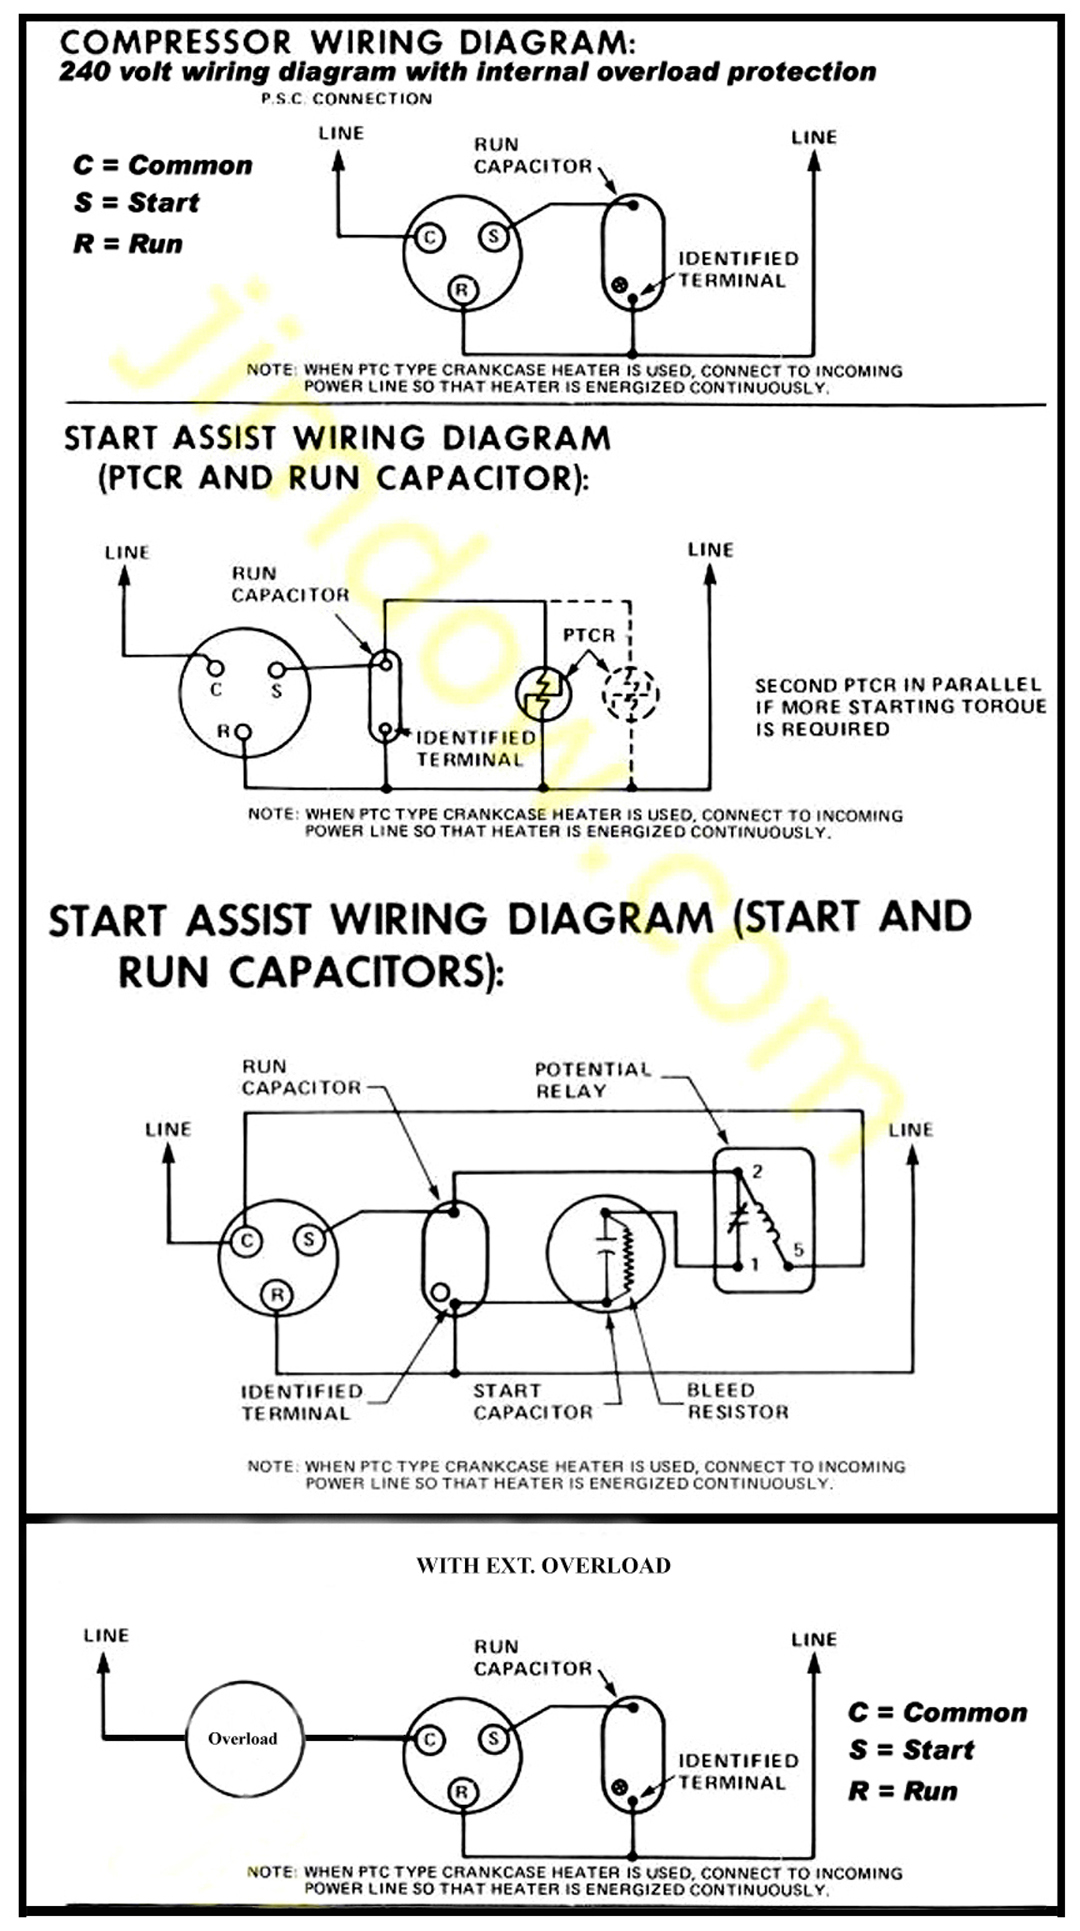 Heat Pump Compressor Wiring Diagram | Manual E-Books - Compressor Wiring Diagram